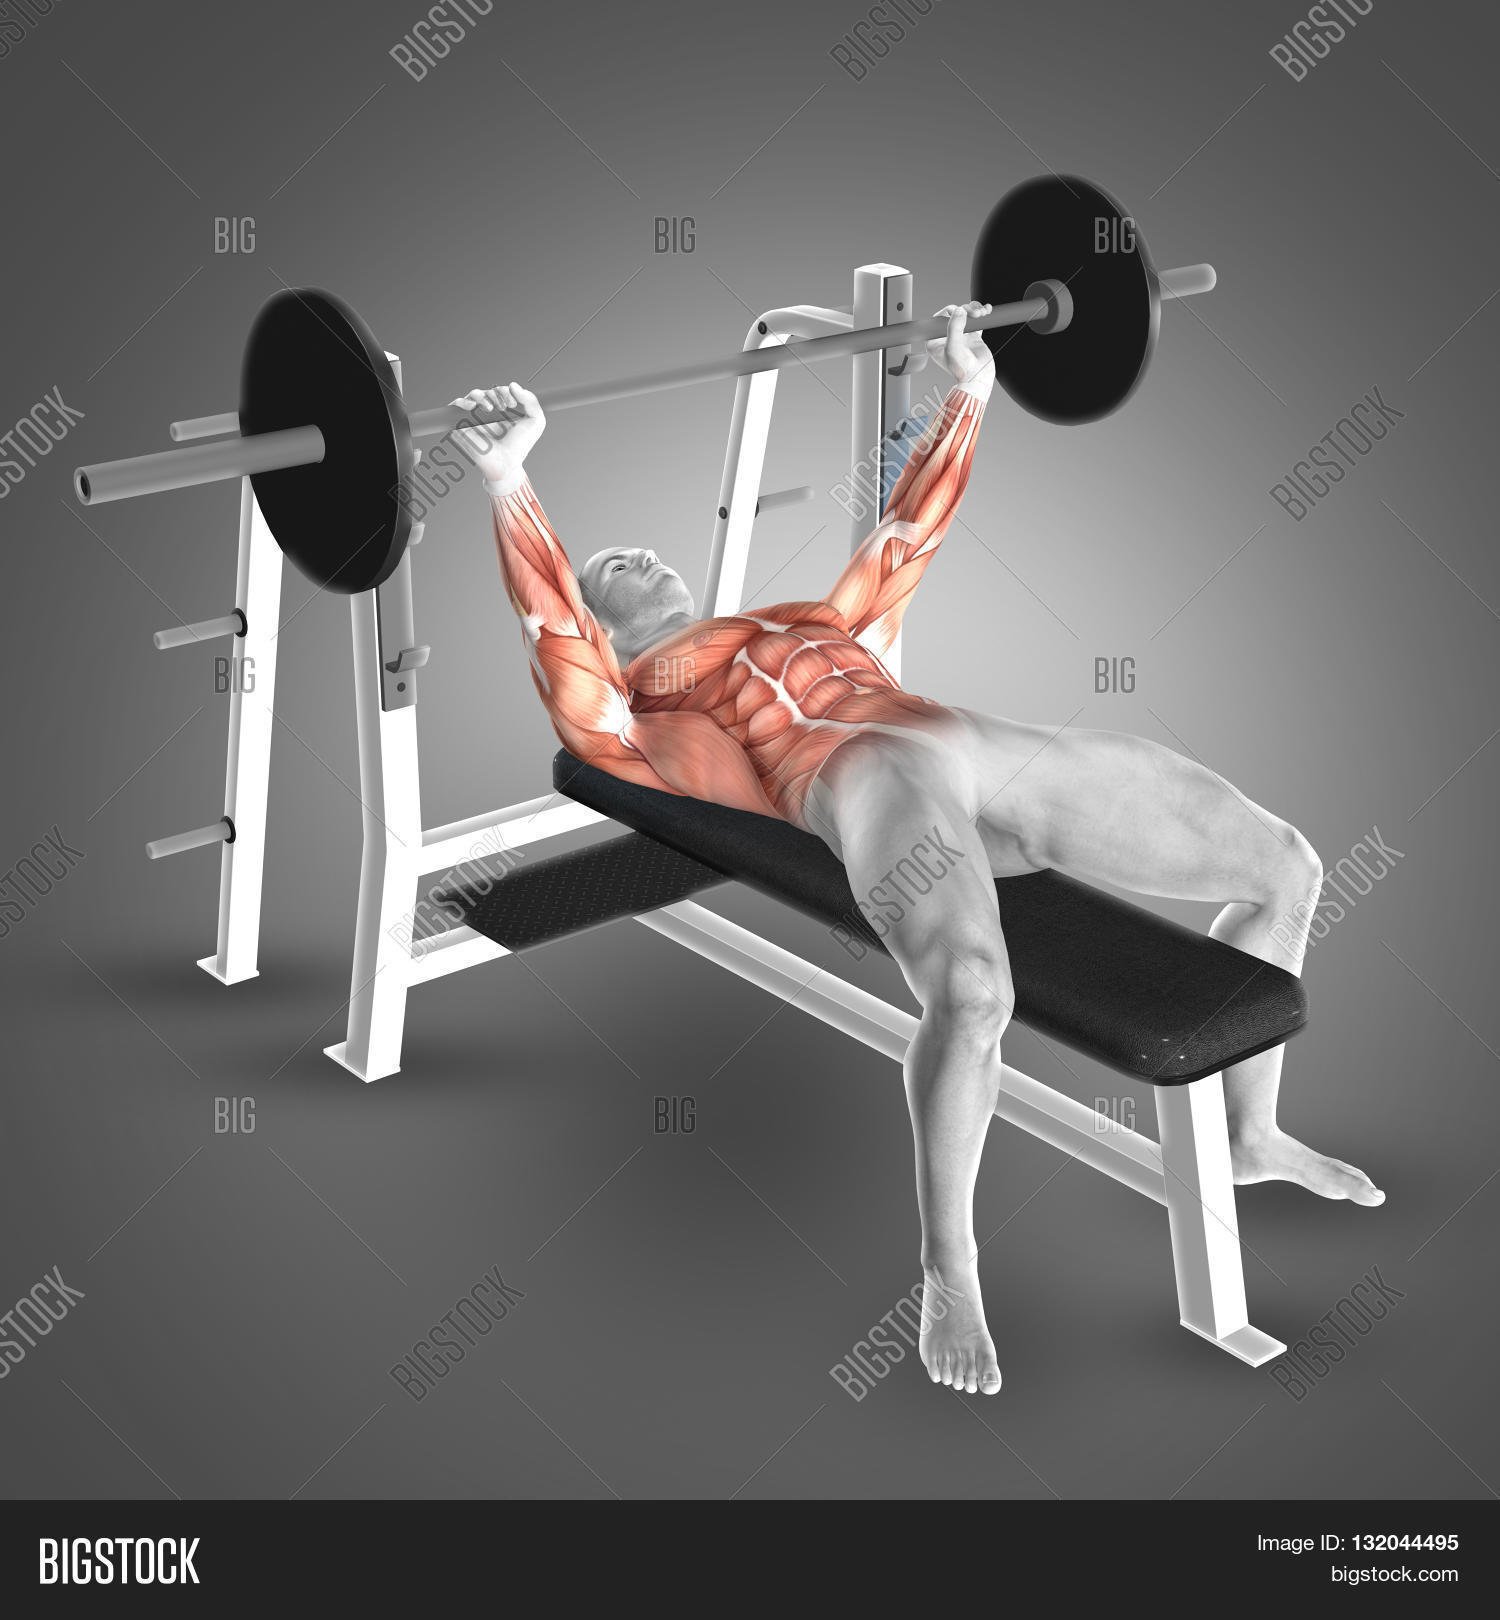 3d Render Male Figure Barbell Bench Image Photo Bigstock